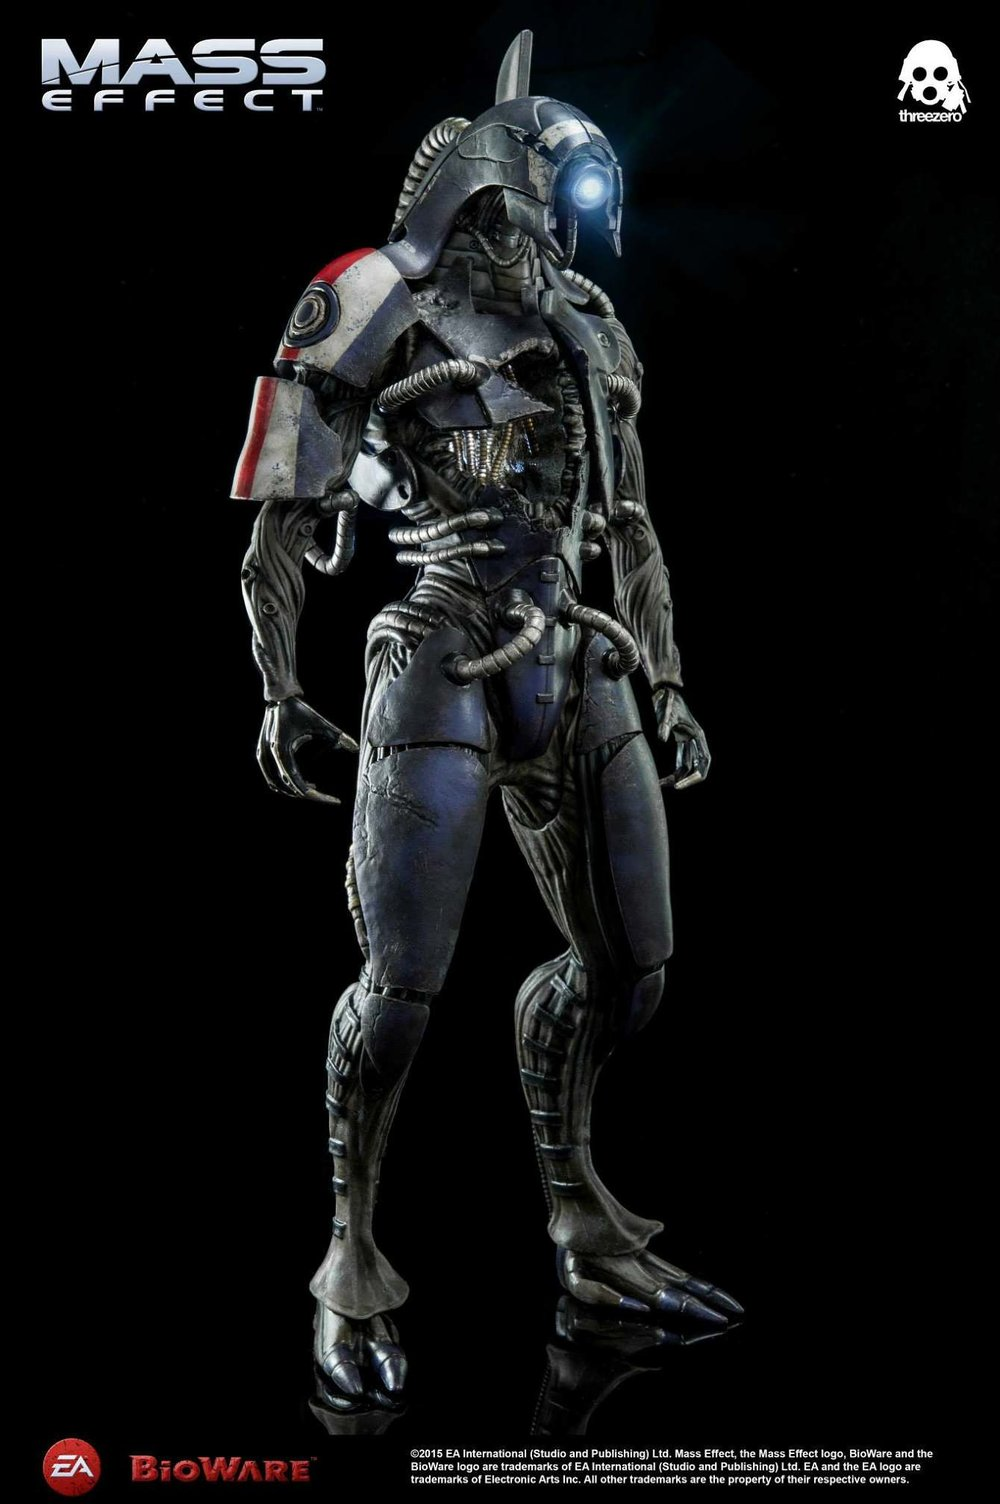 ThreeZero-Bioware-video-game-Legion-Mass-Effect-figure-12_1340_c.jpg